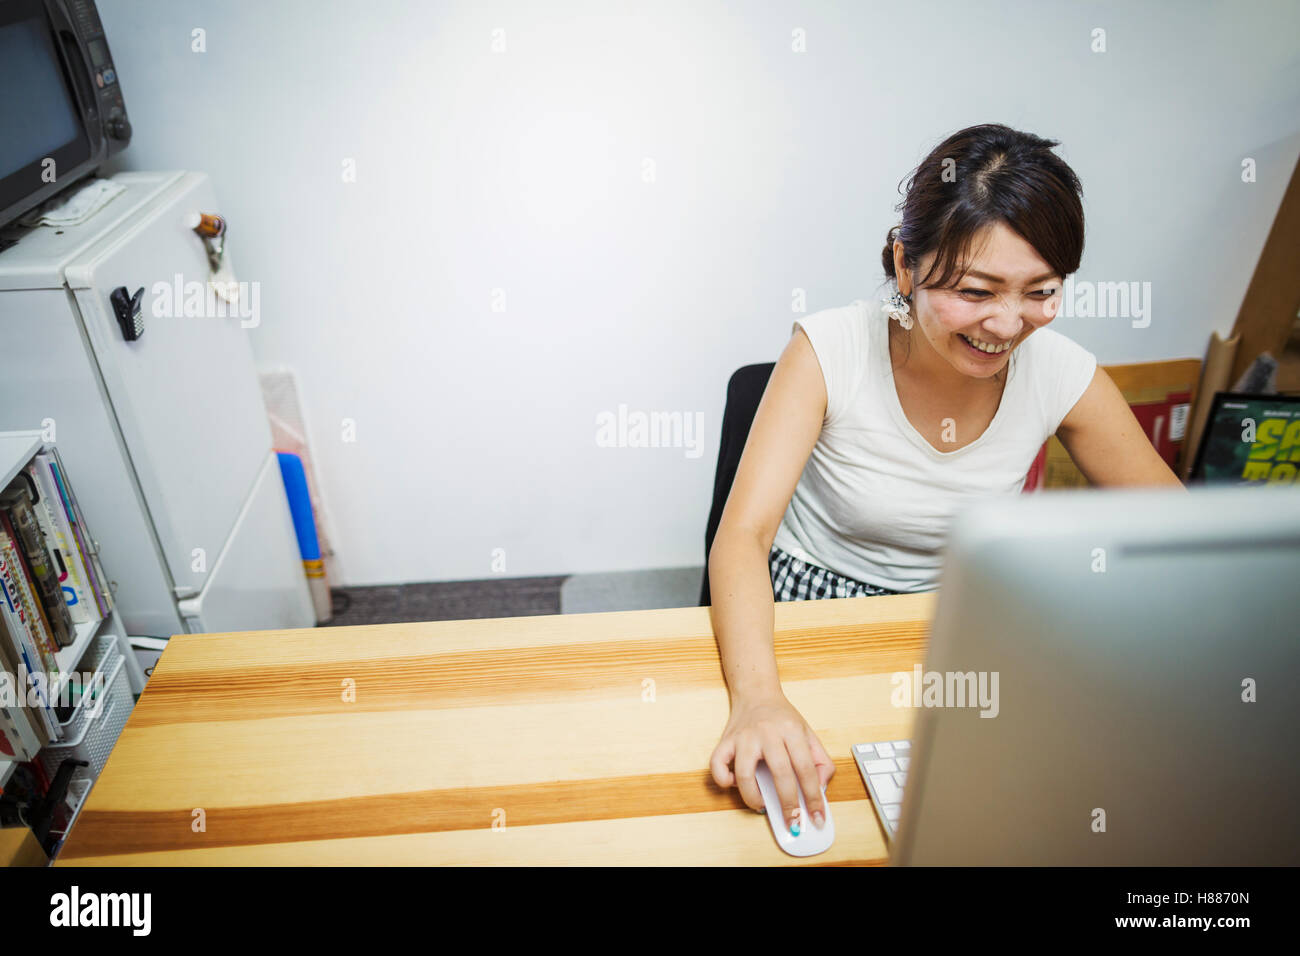 Design Studio. A woman working at a desk using a mouse and computer. - Stock Image